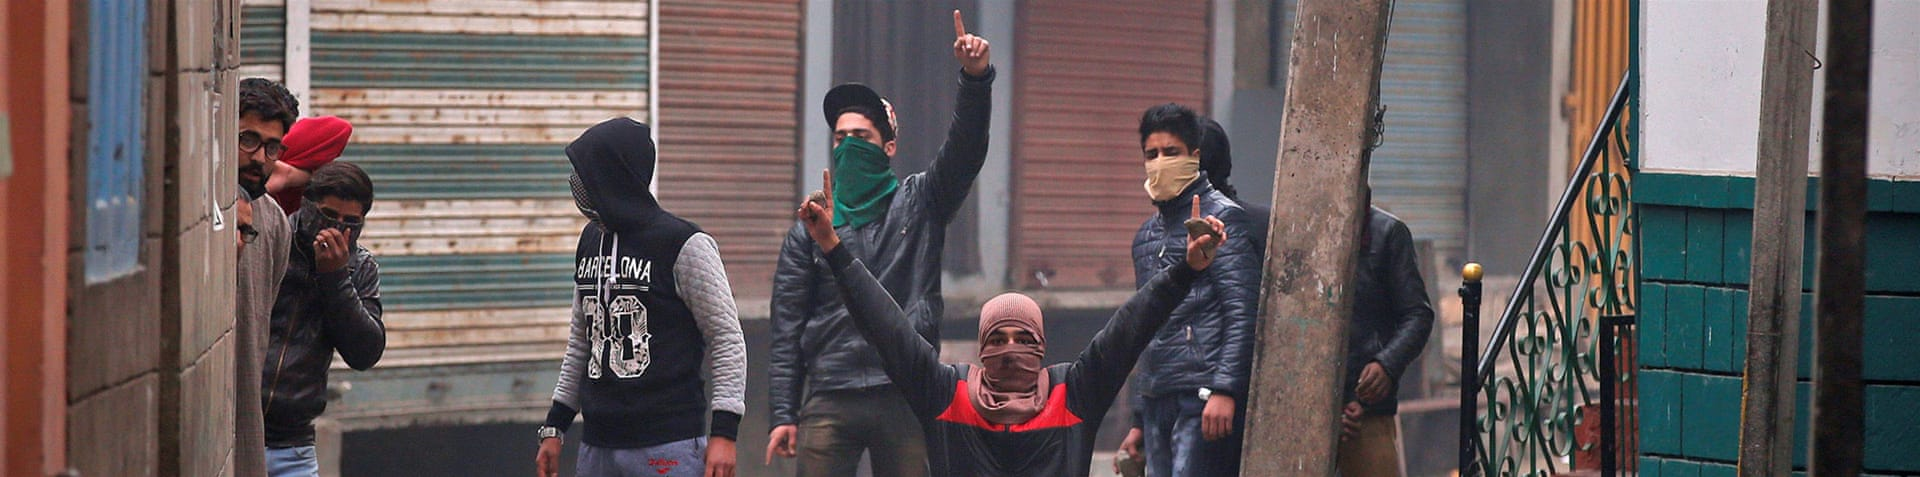 Kashmir is experiencing its largest protests against Indian rule in recent years [AP]